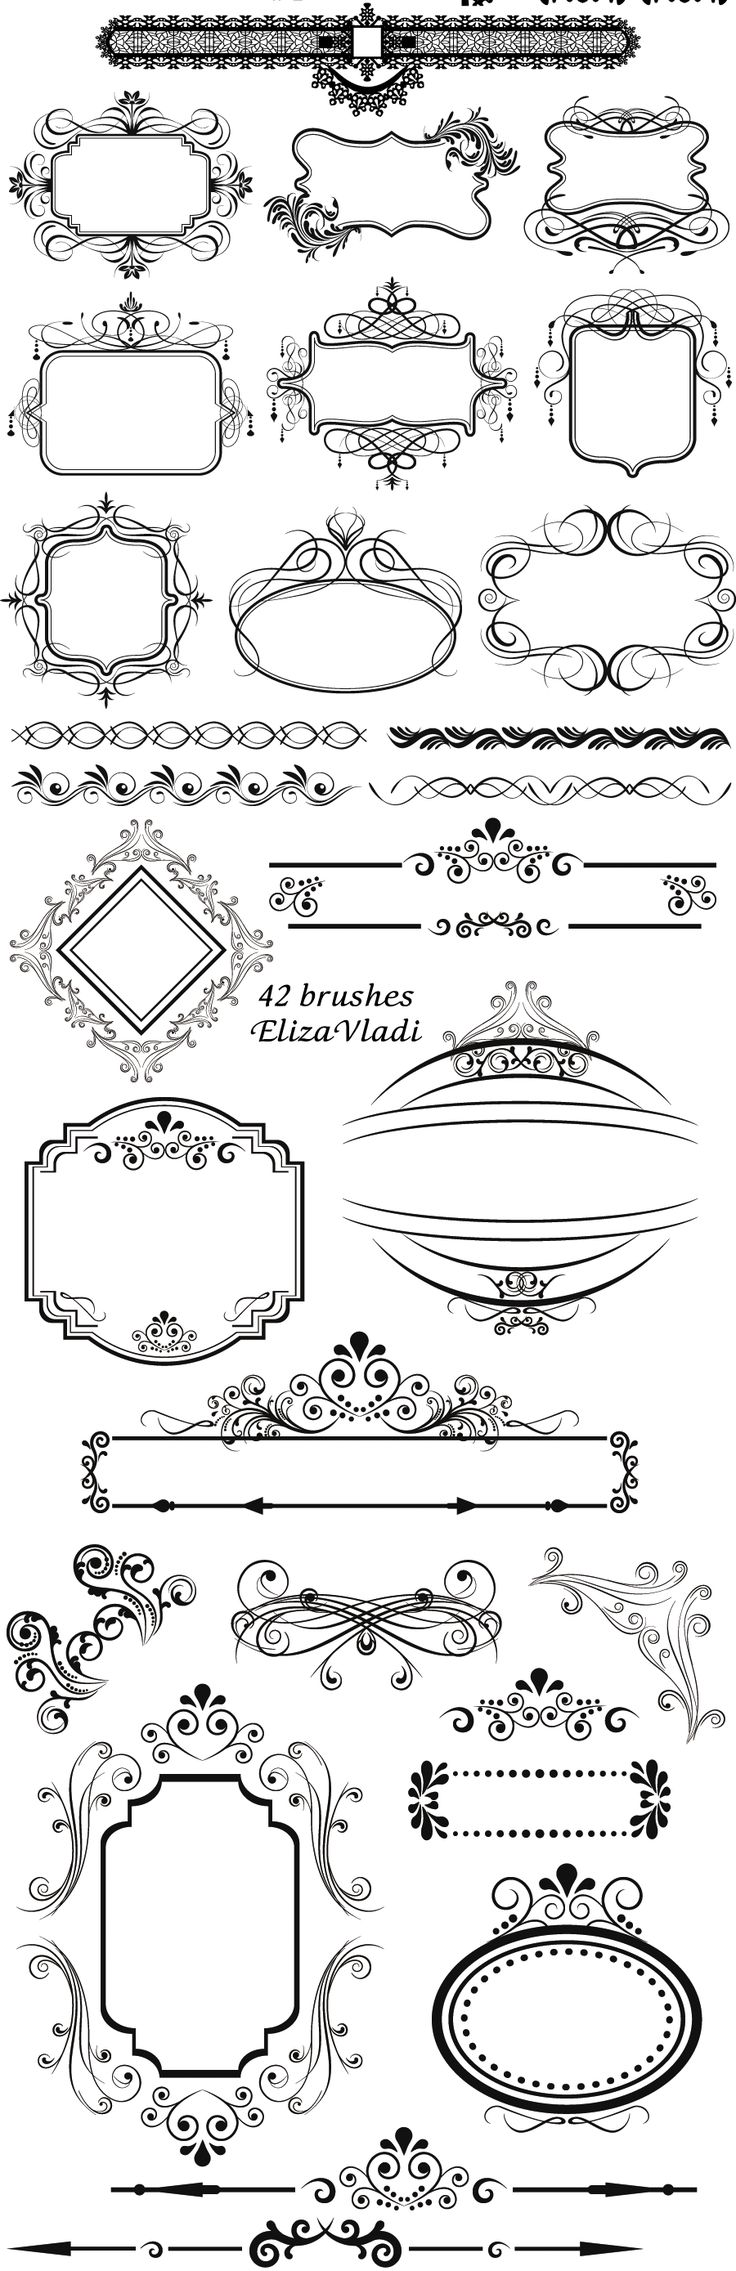 FREE Photoshop brushes: Vintage frames...UNFORTUNATELY LINKY NO LONGER WORKS but I still love the designs